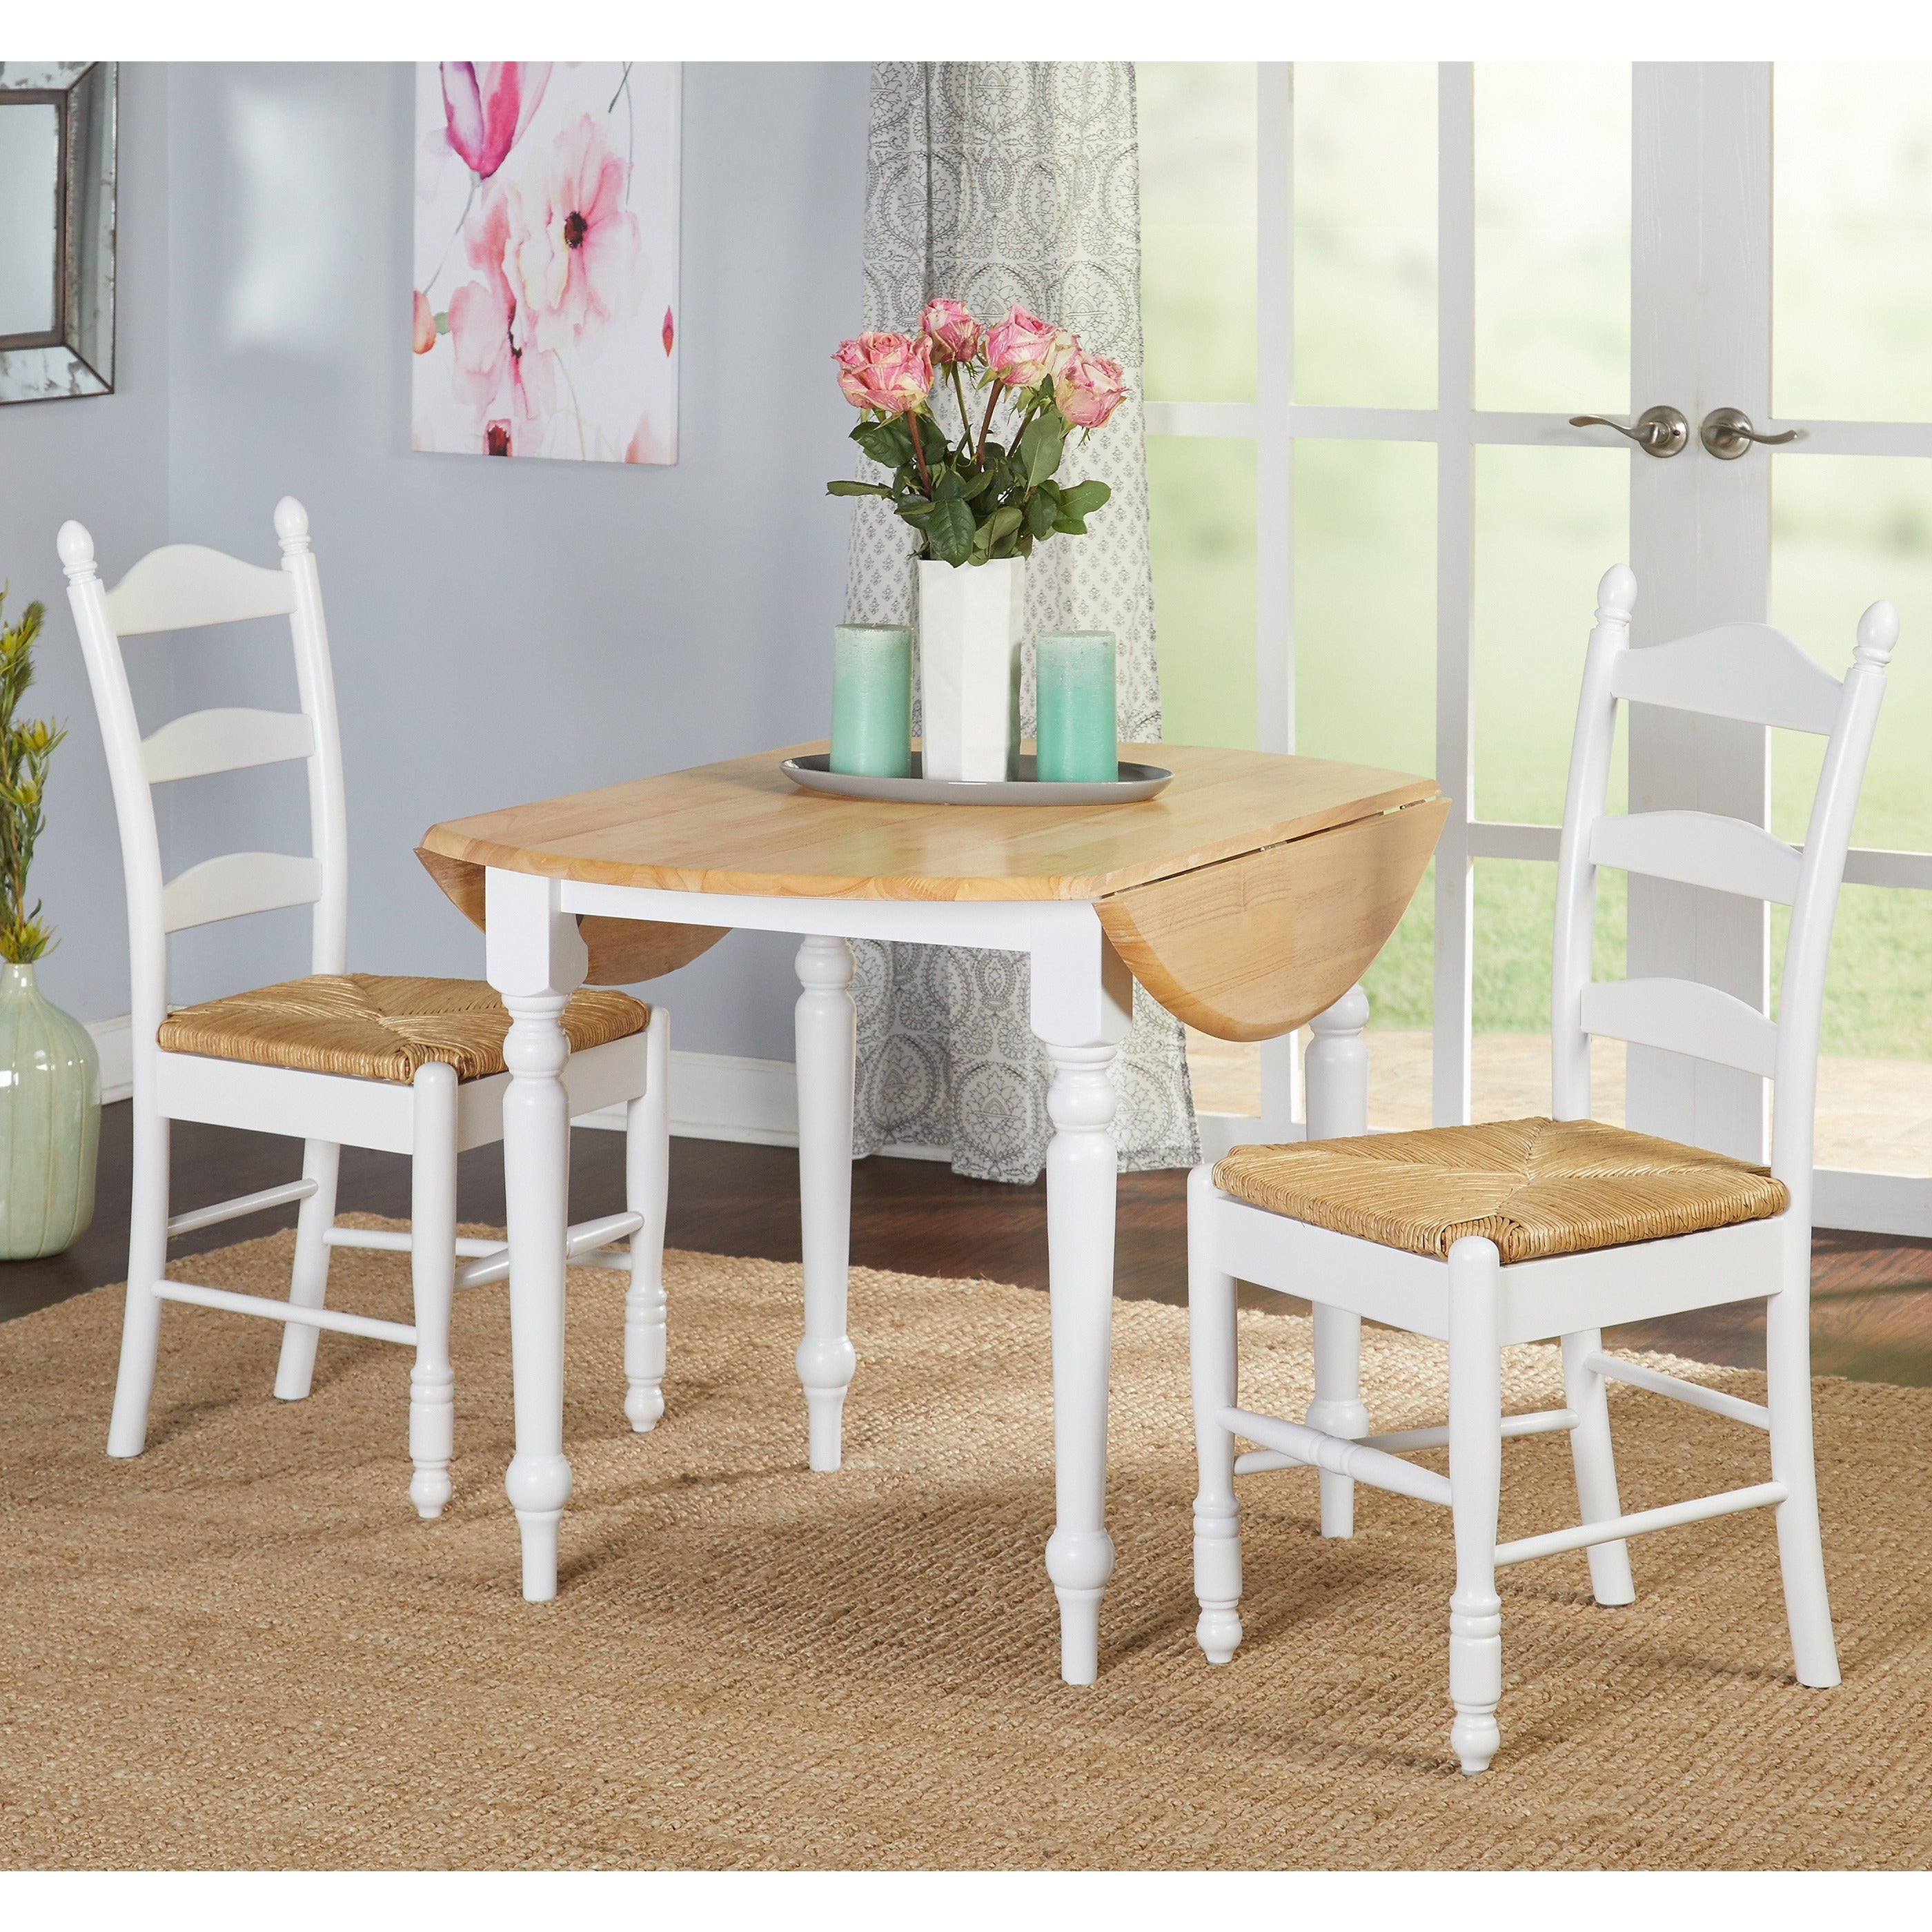 Delicieux Shop Two Tone 40 Inch Rubberwood Round Drop Leaf Table   Free Shipping  Today   Overstock.com   3545815